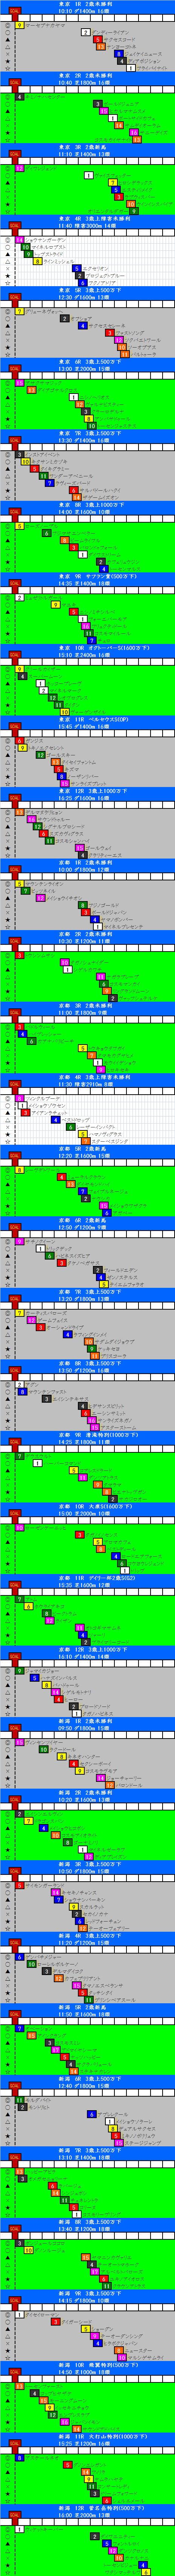 20131005.png